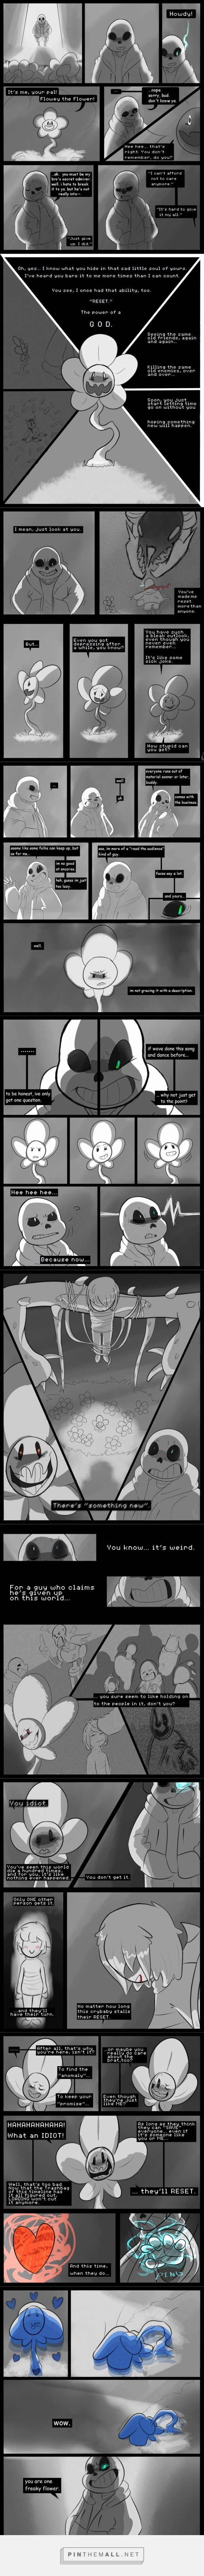 What If - Flowey and Sans - comic 1/2 (I can't believe I never posted the first half of this!)